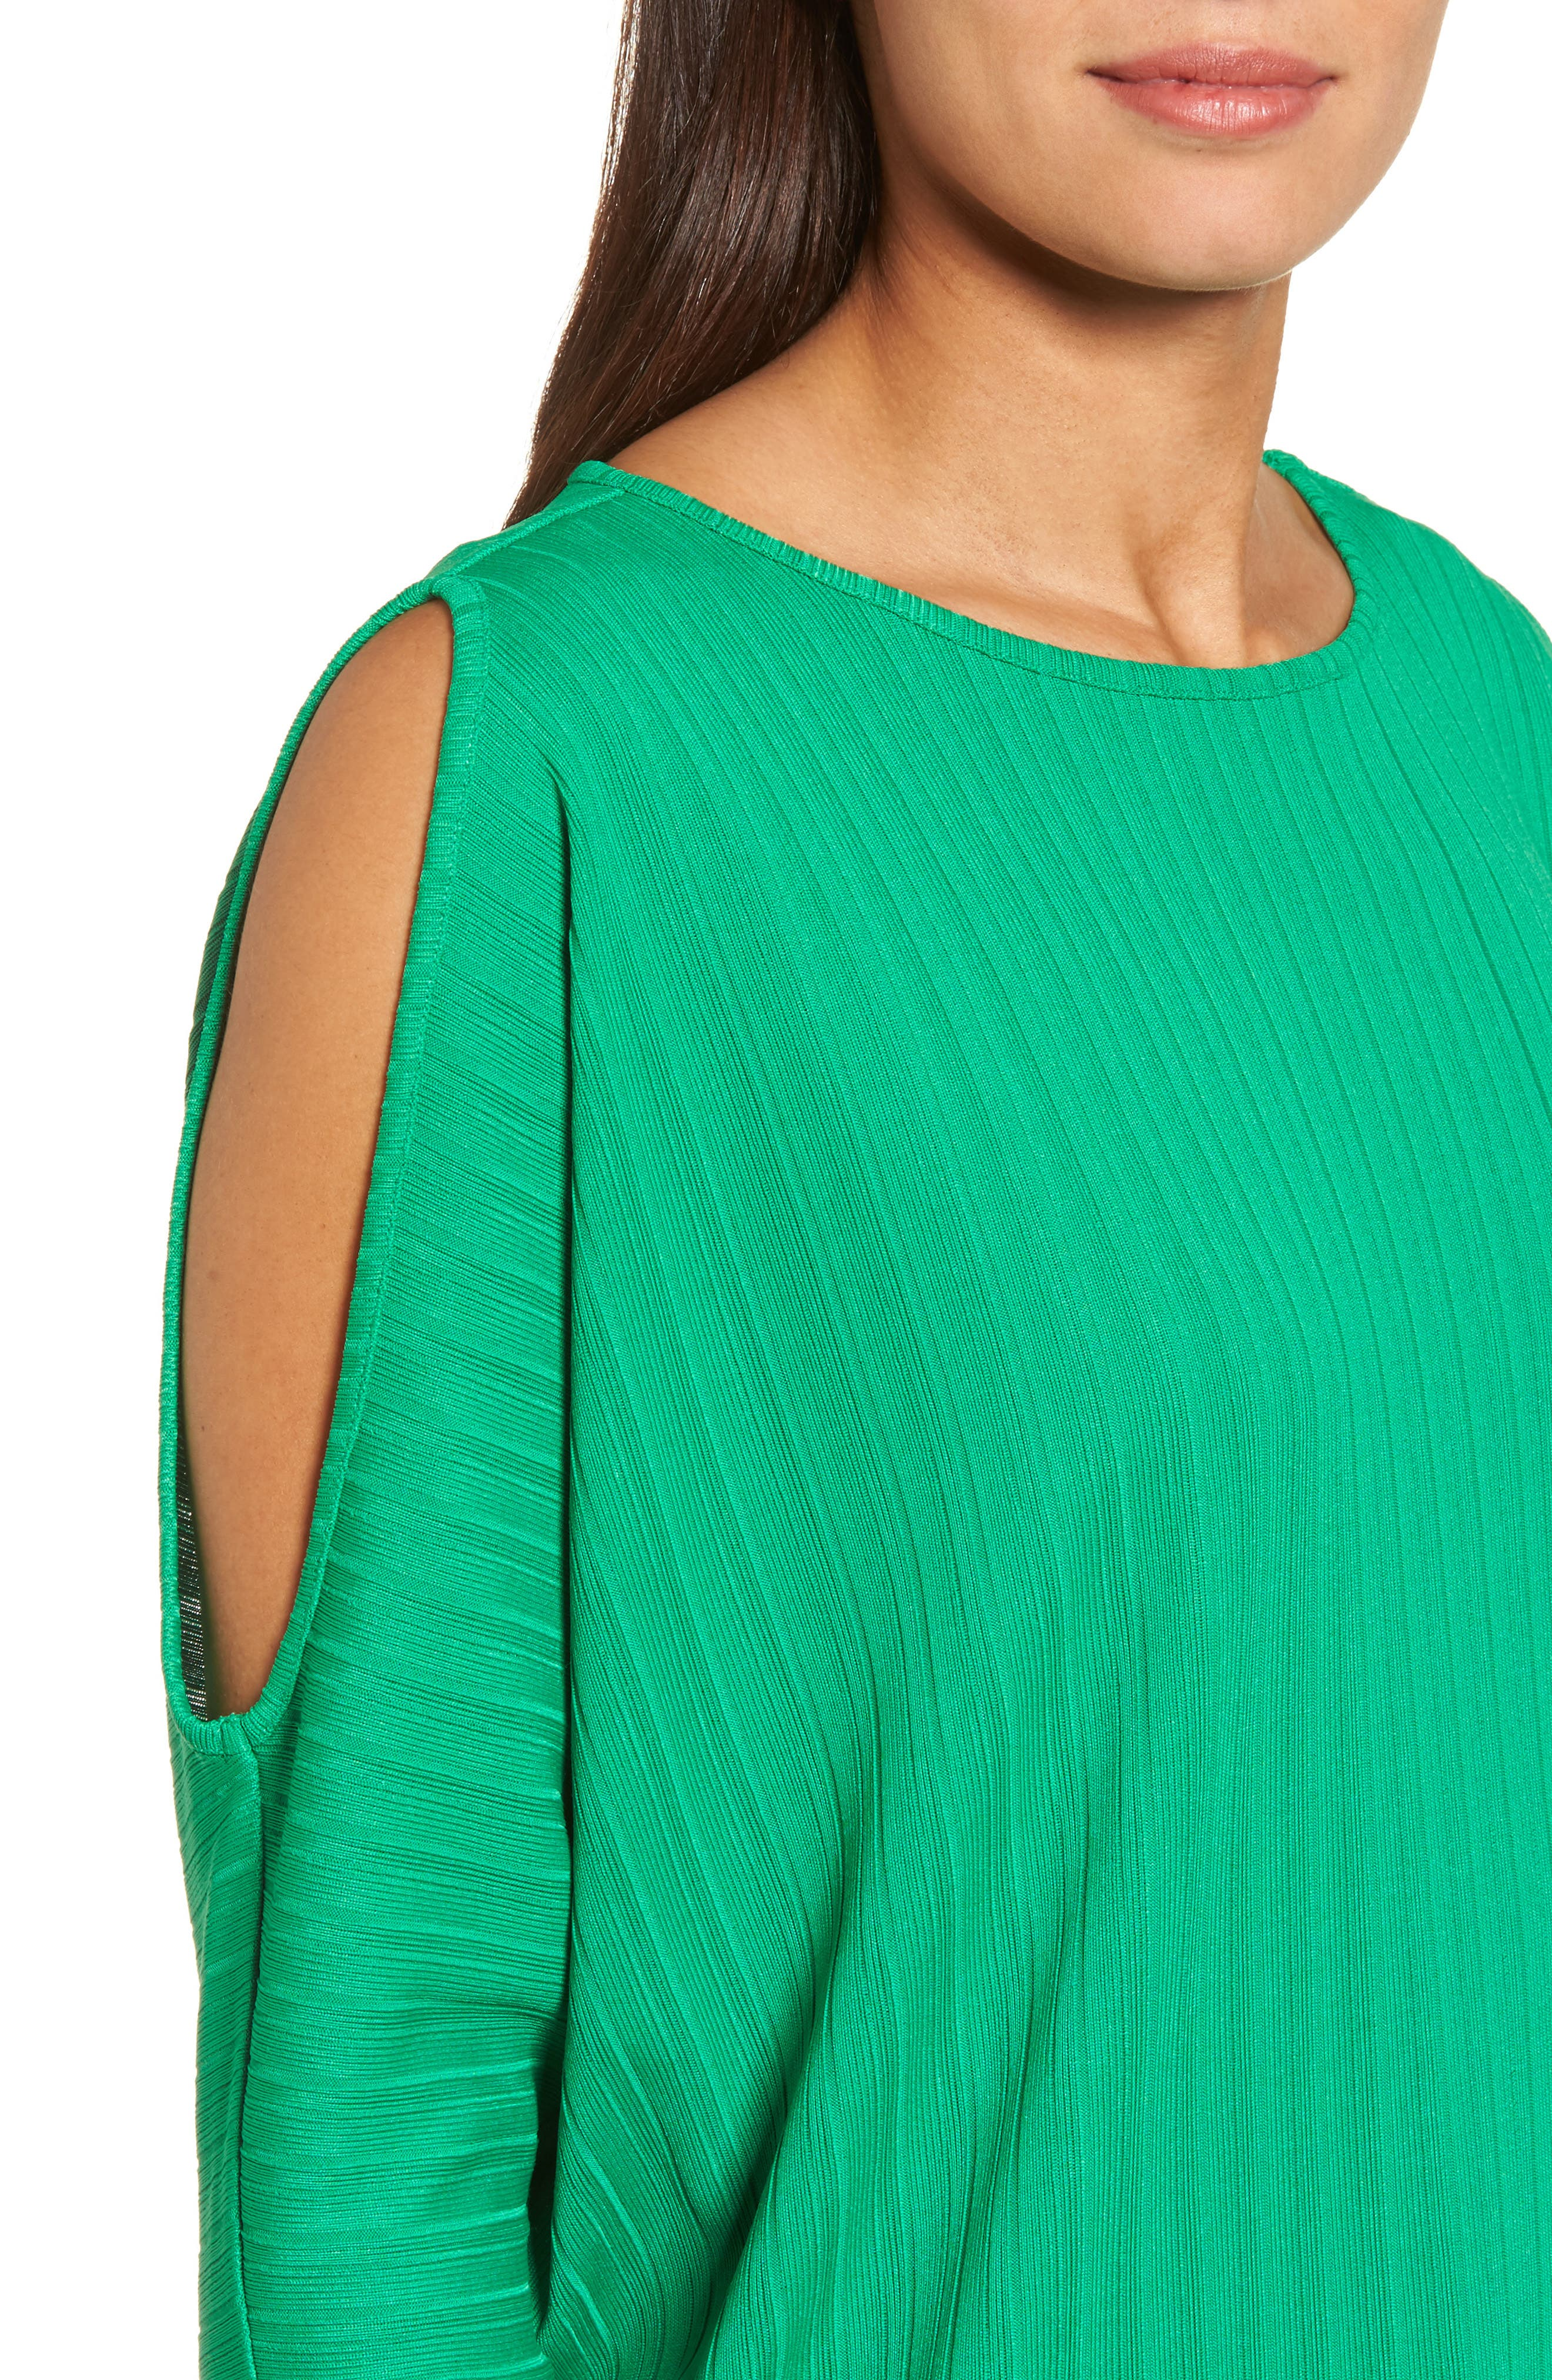 Ribbed Knit Cold Shoulder Top,                             Alternate thumbnail 4, color,                             Bright Amazon